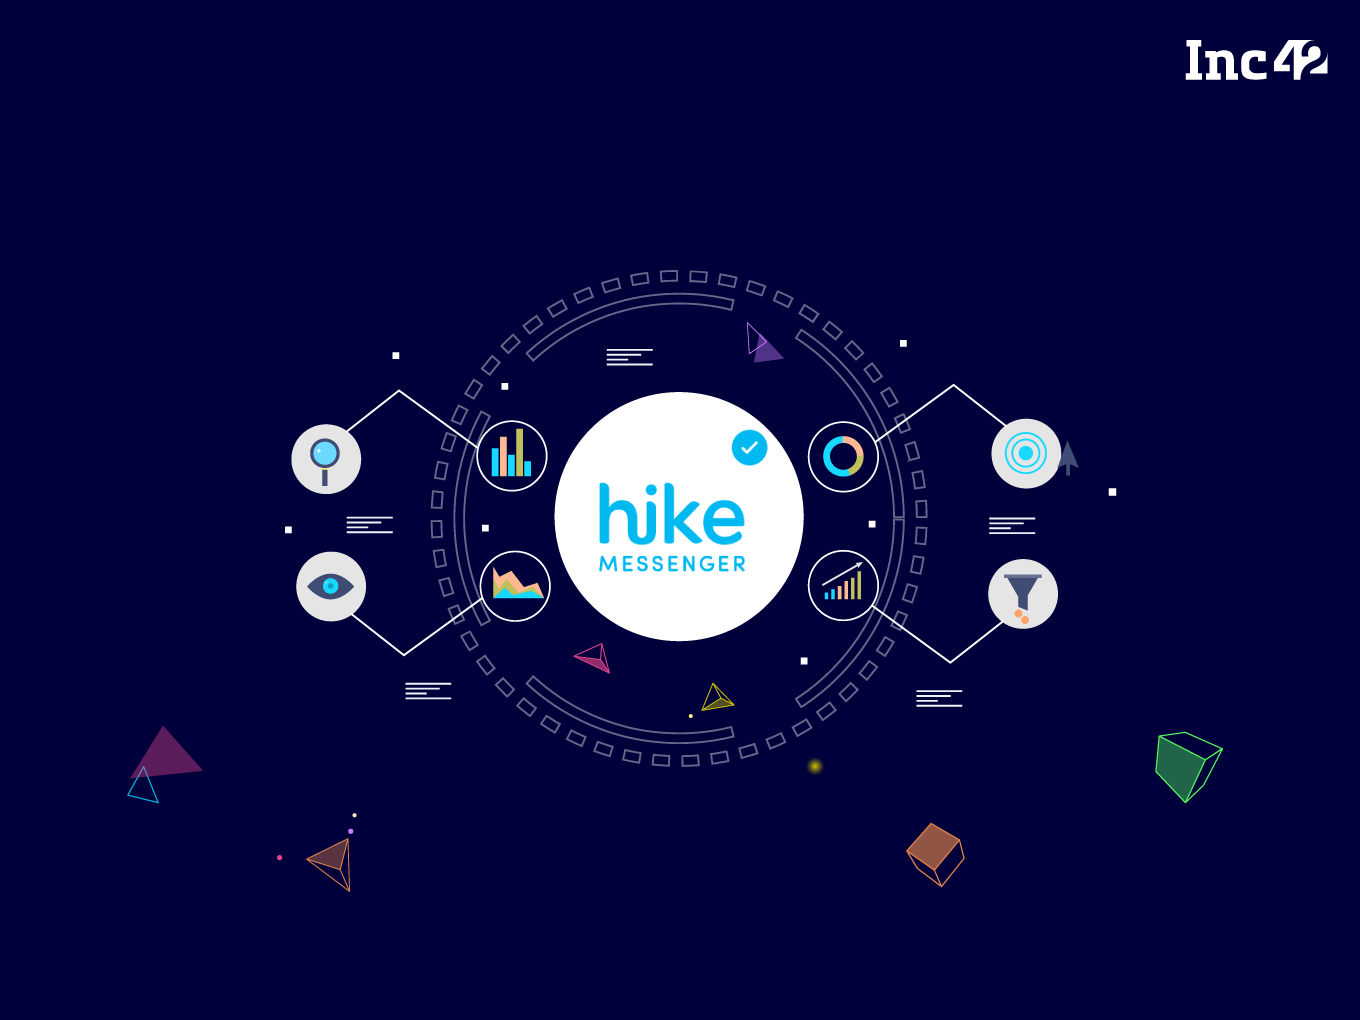 [WTF] With No Monetising Plan In Place Till 2020, Hike Messenger May Just Have To Go Take A Hike